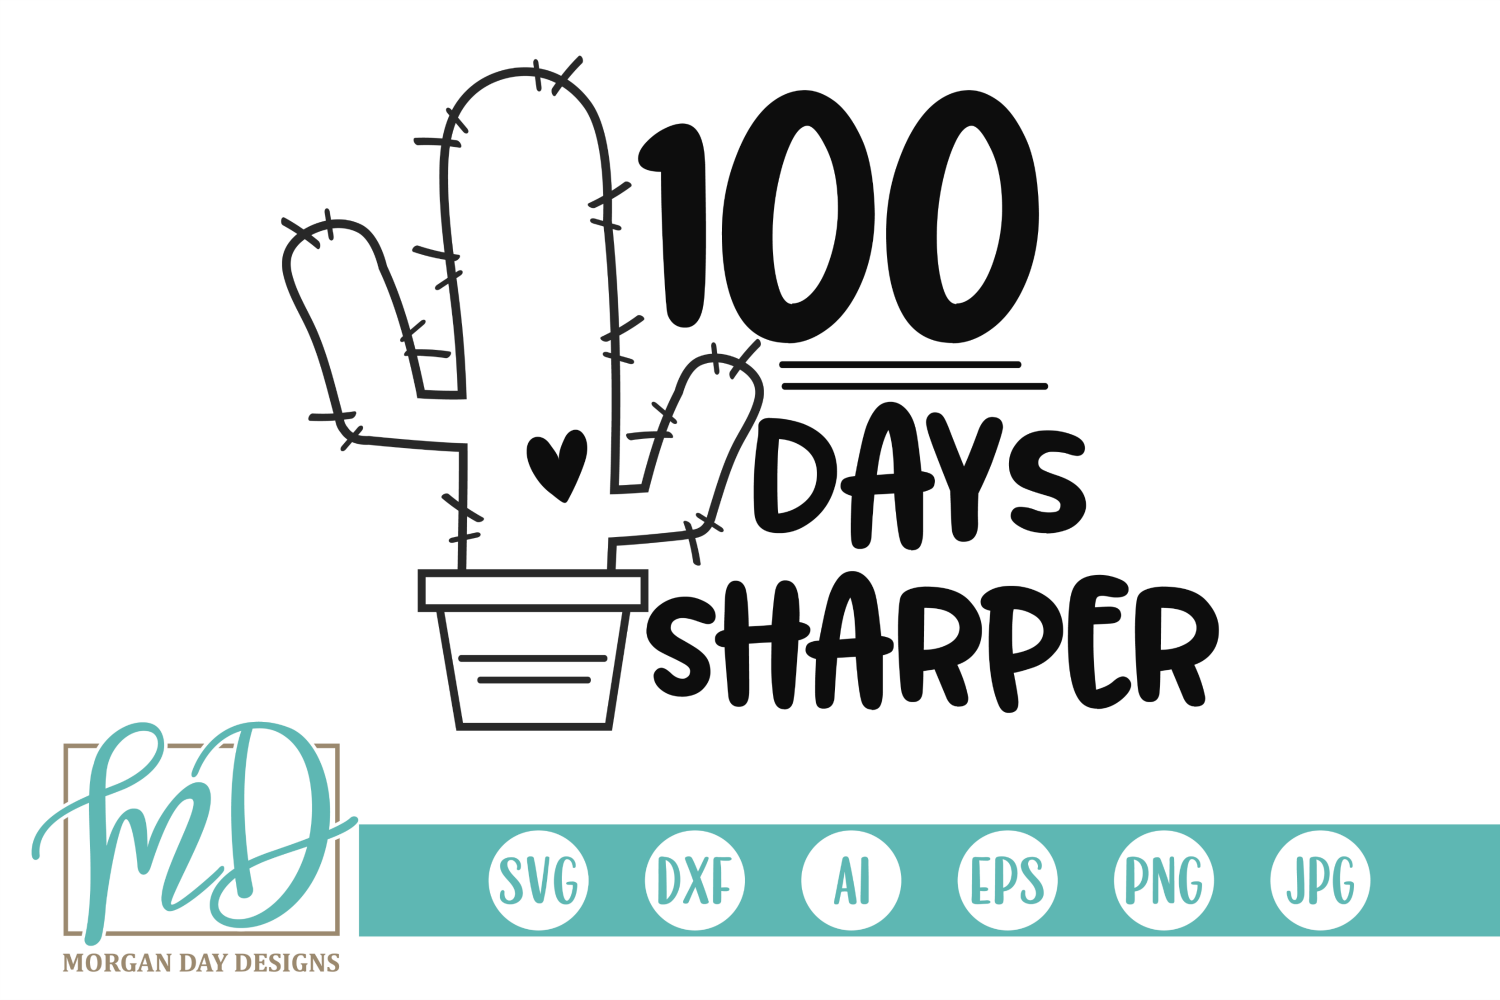 Download Free 100 Days Sharper Cactus Graphic By Morgan Day Designs Creative for Cricut Explore, Silhouette and other cutting machines.